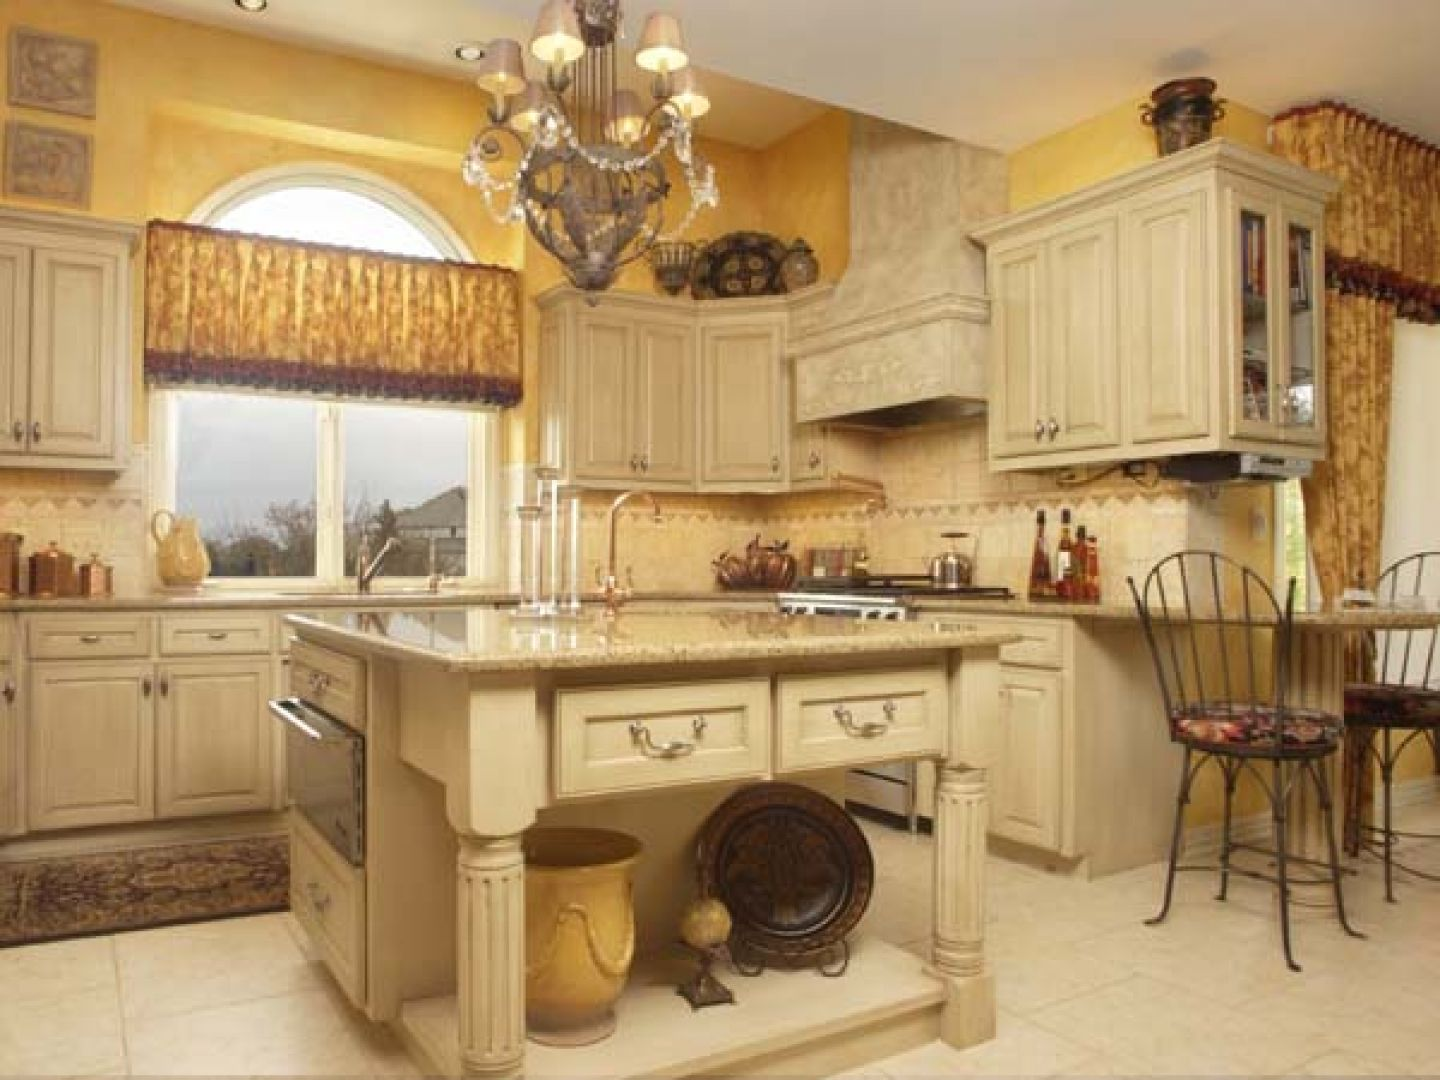 Tuscany Kitchen Would Change Wall Color With